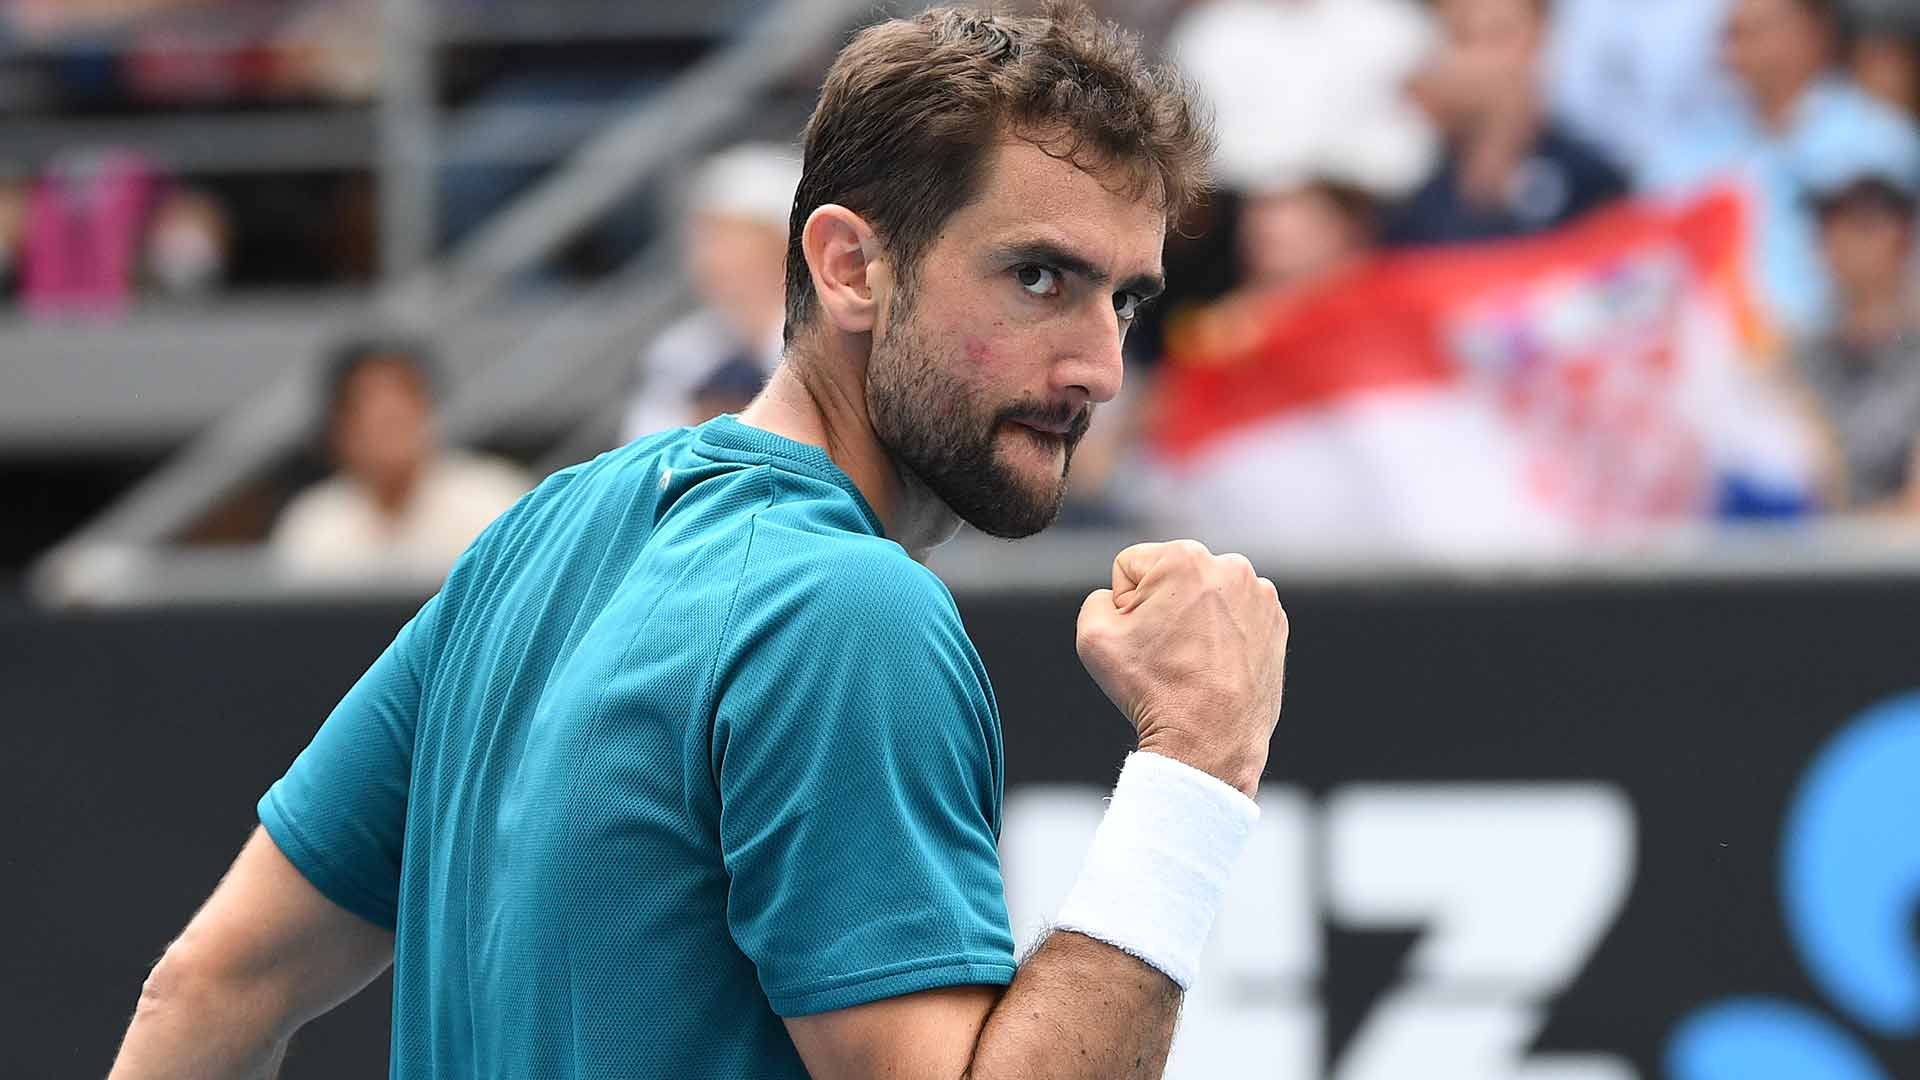 Marin Cilic looks to improve to 3-1 against Milos Raonic in their ATP Head2Head series.